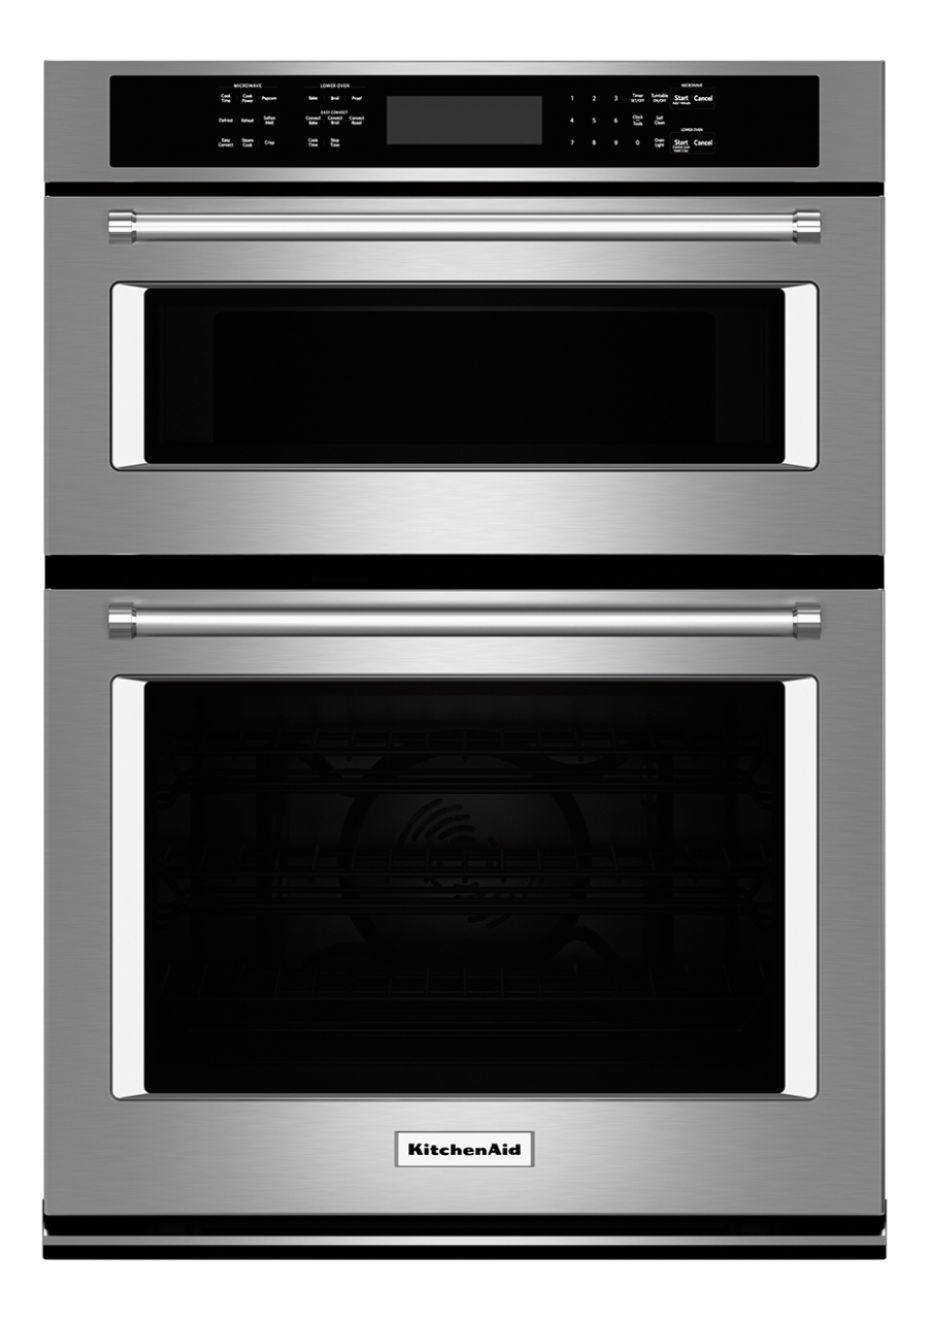 hight resolution of kitchenaid 30 single electric convection wall oven with built in further on kitchenaid microwave circuit diagram wiring photos for help